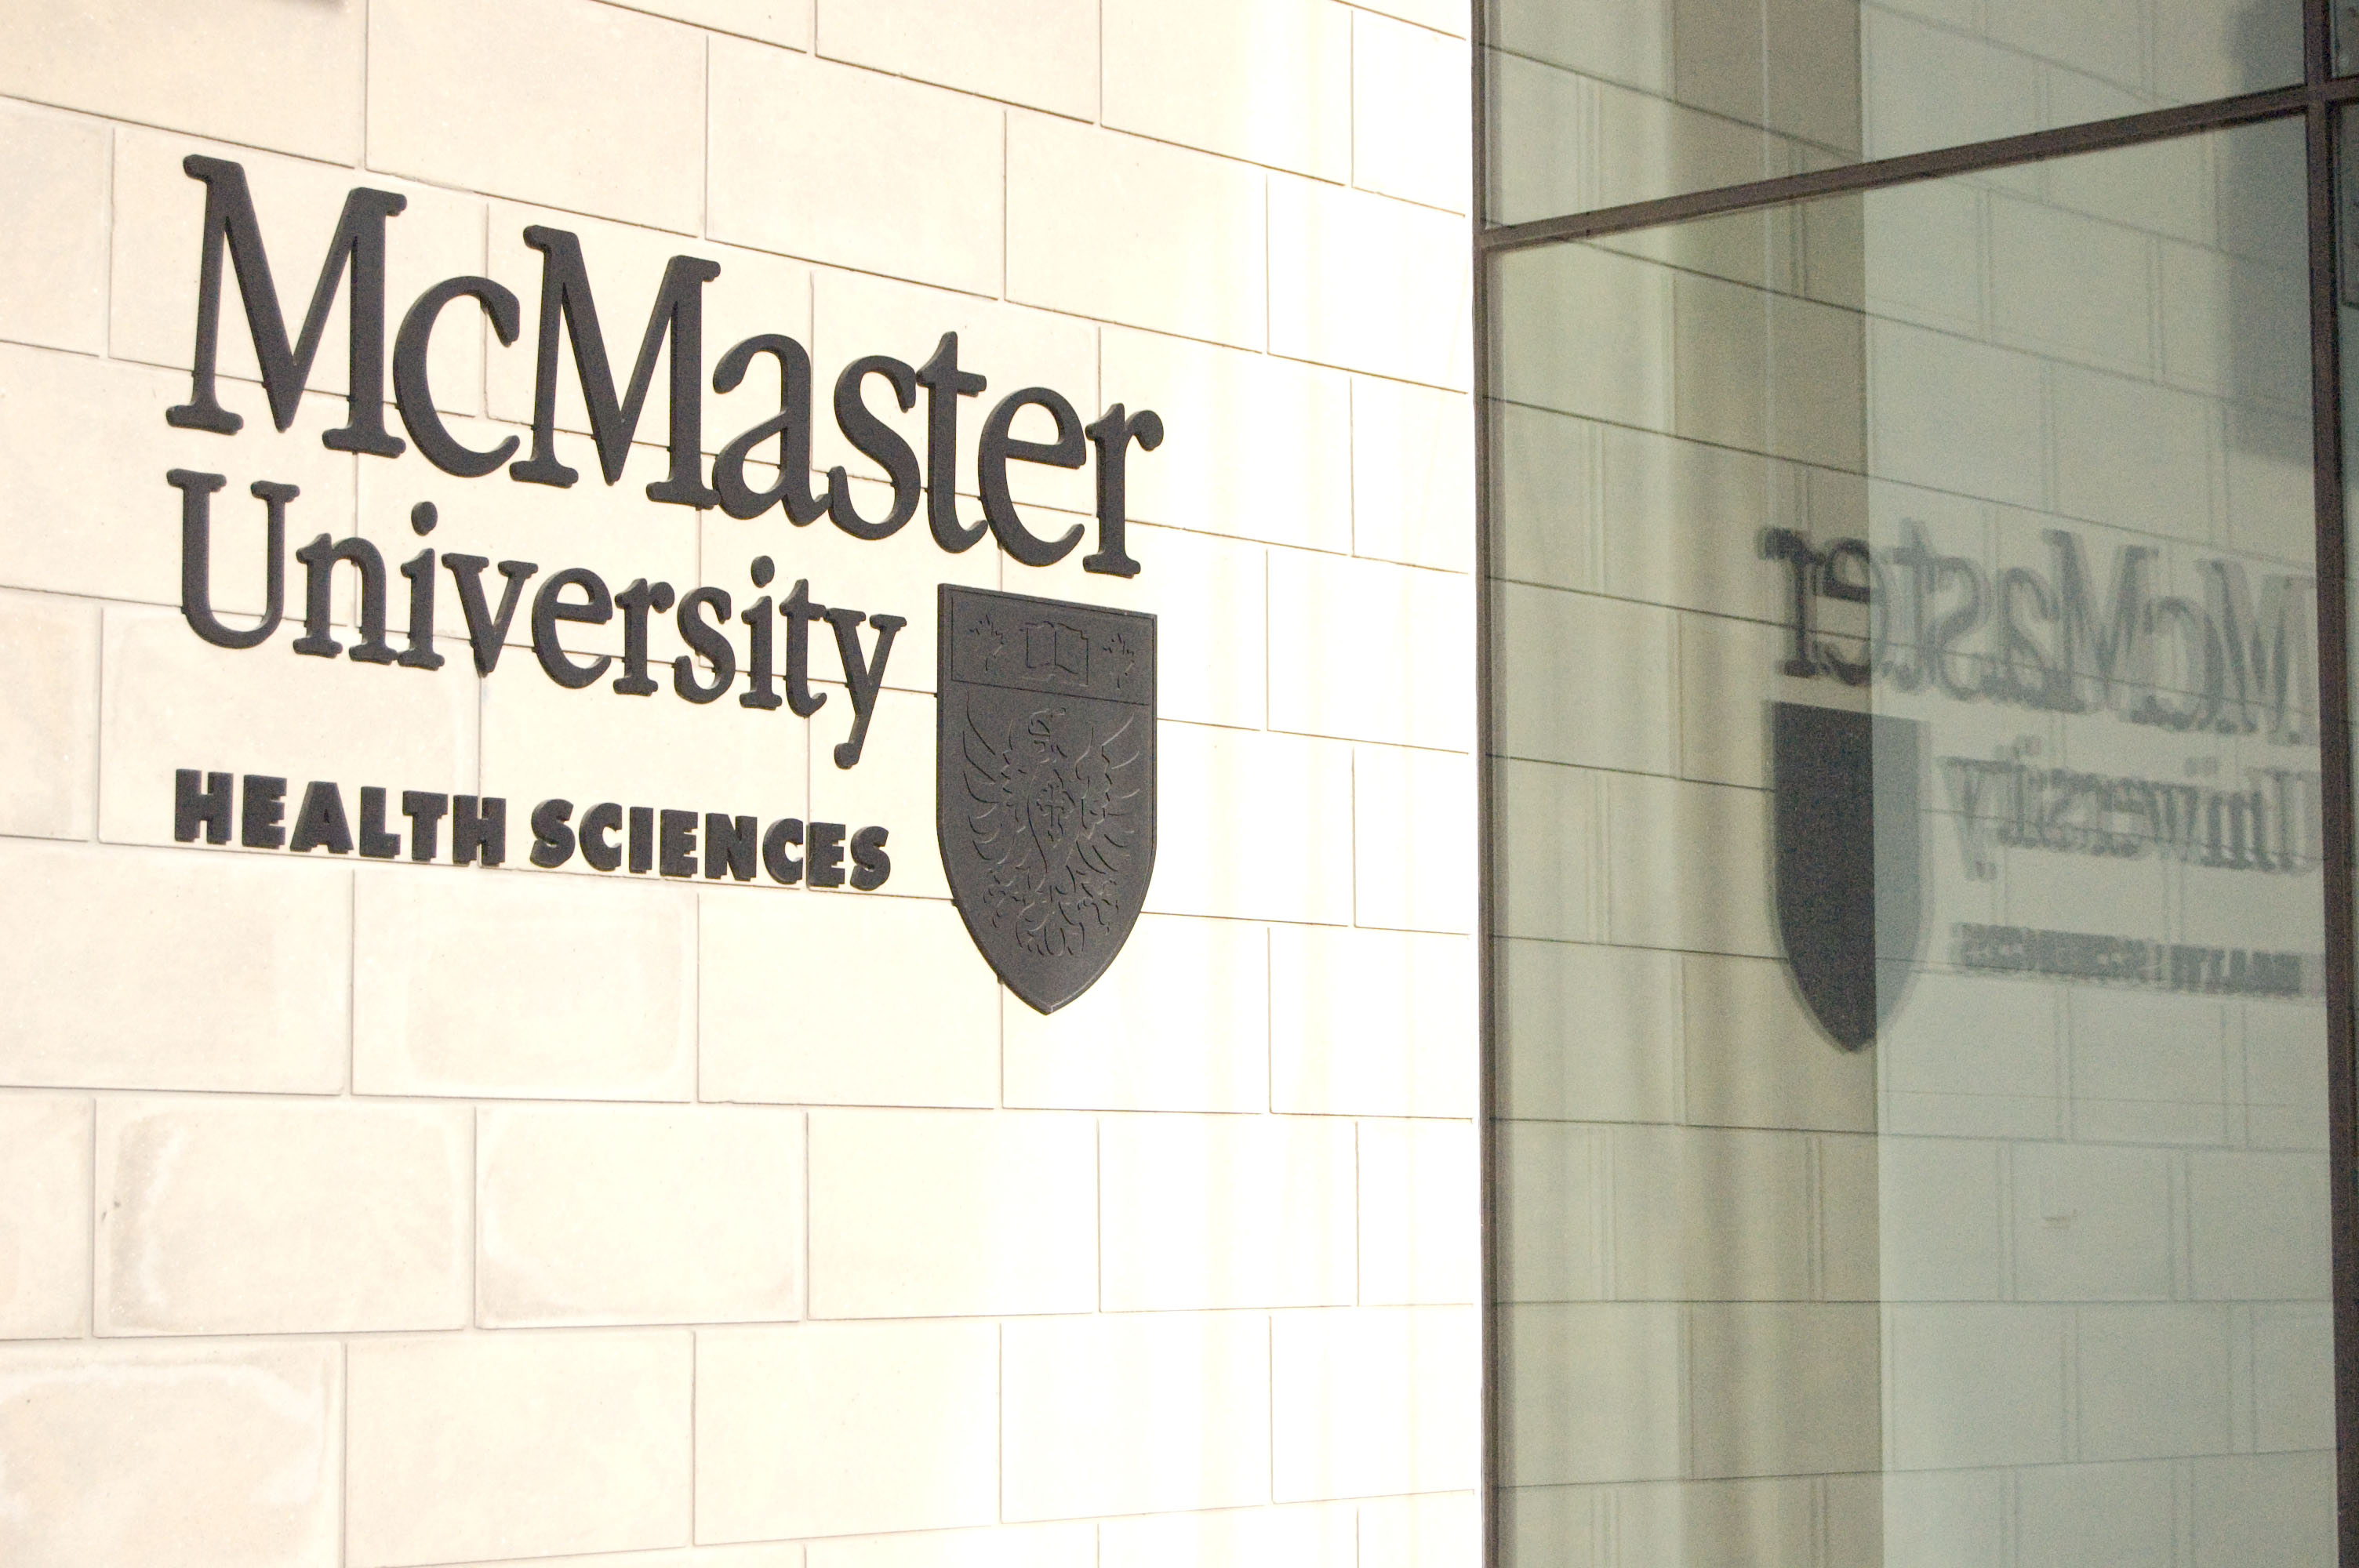 McMaster_Uniersity_Health_Sciences_entrance